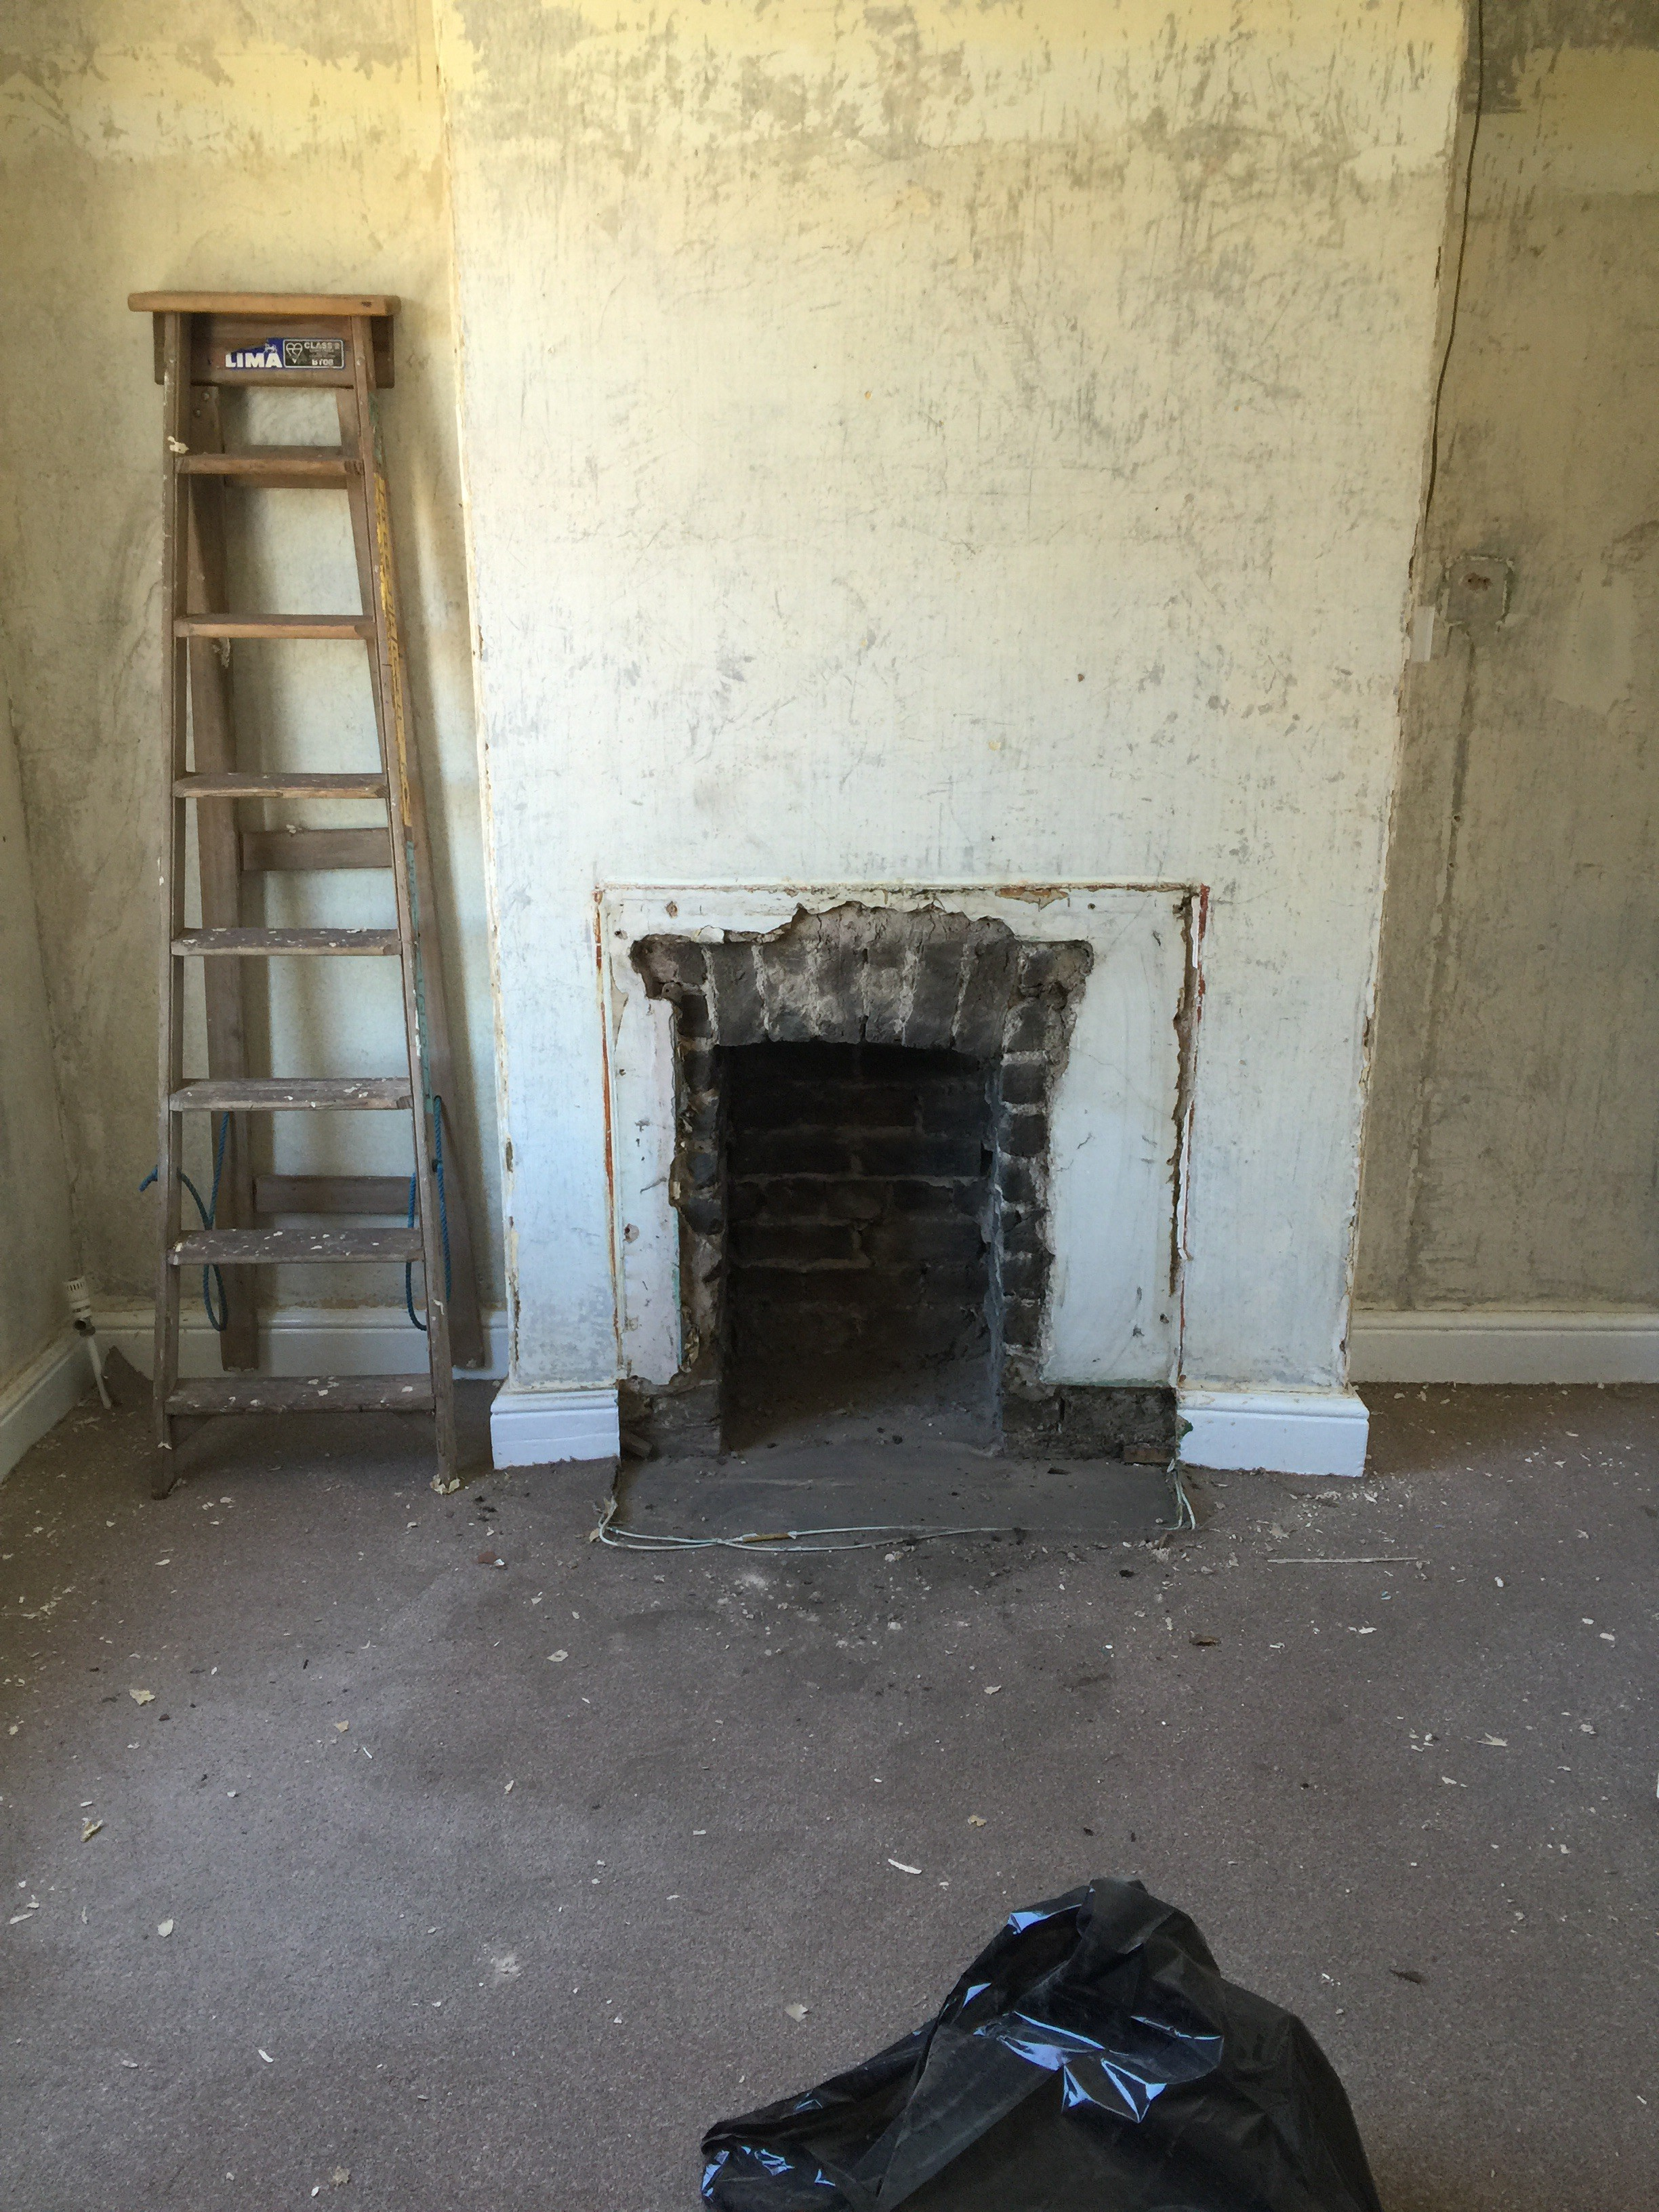 Weekend Number 1- Steaming, Stripping, Woodchip, Surprises & One Catastrophe